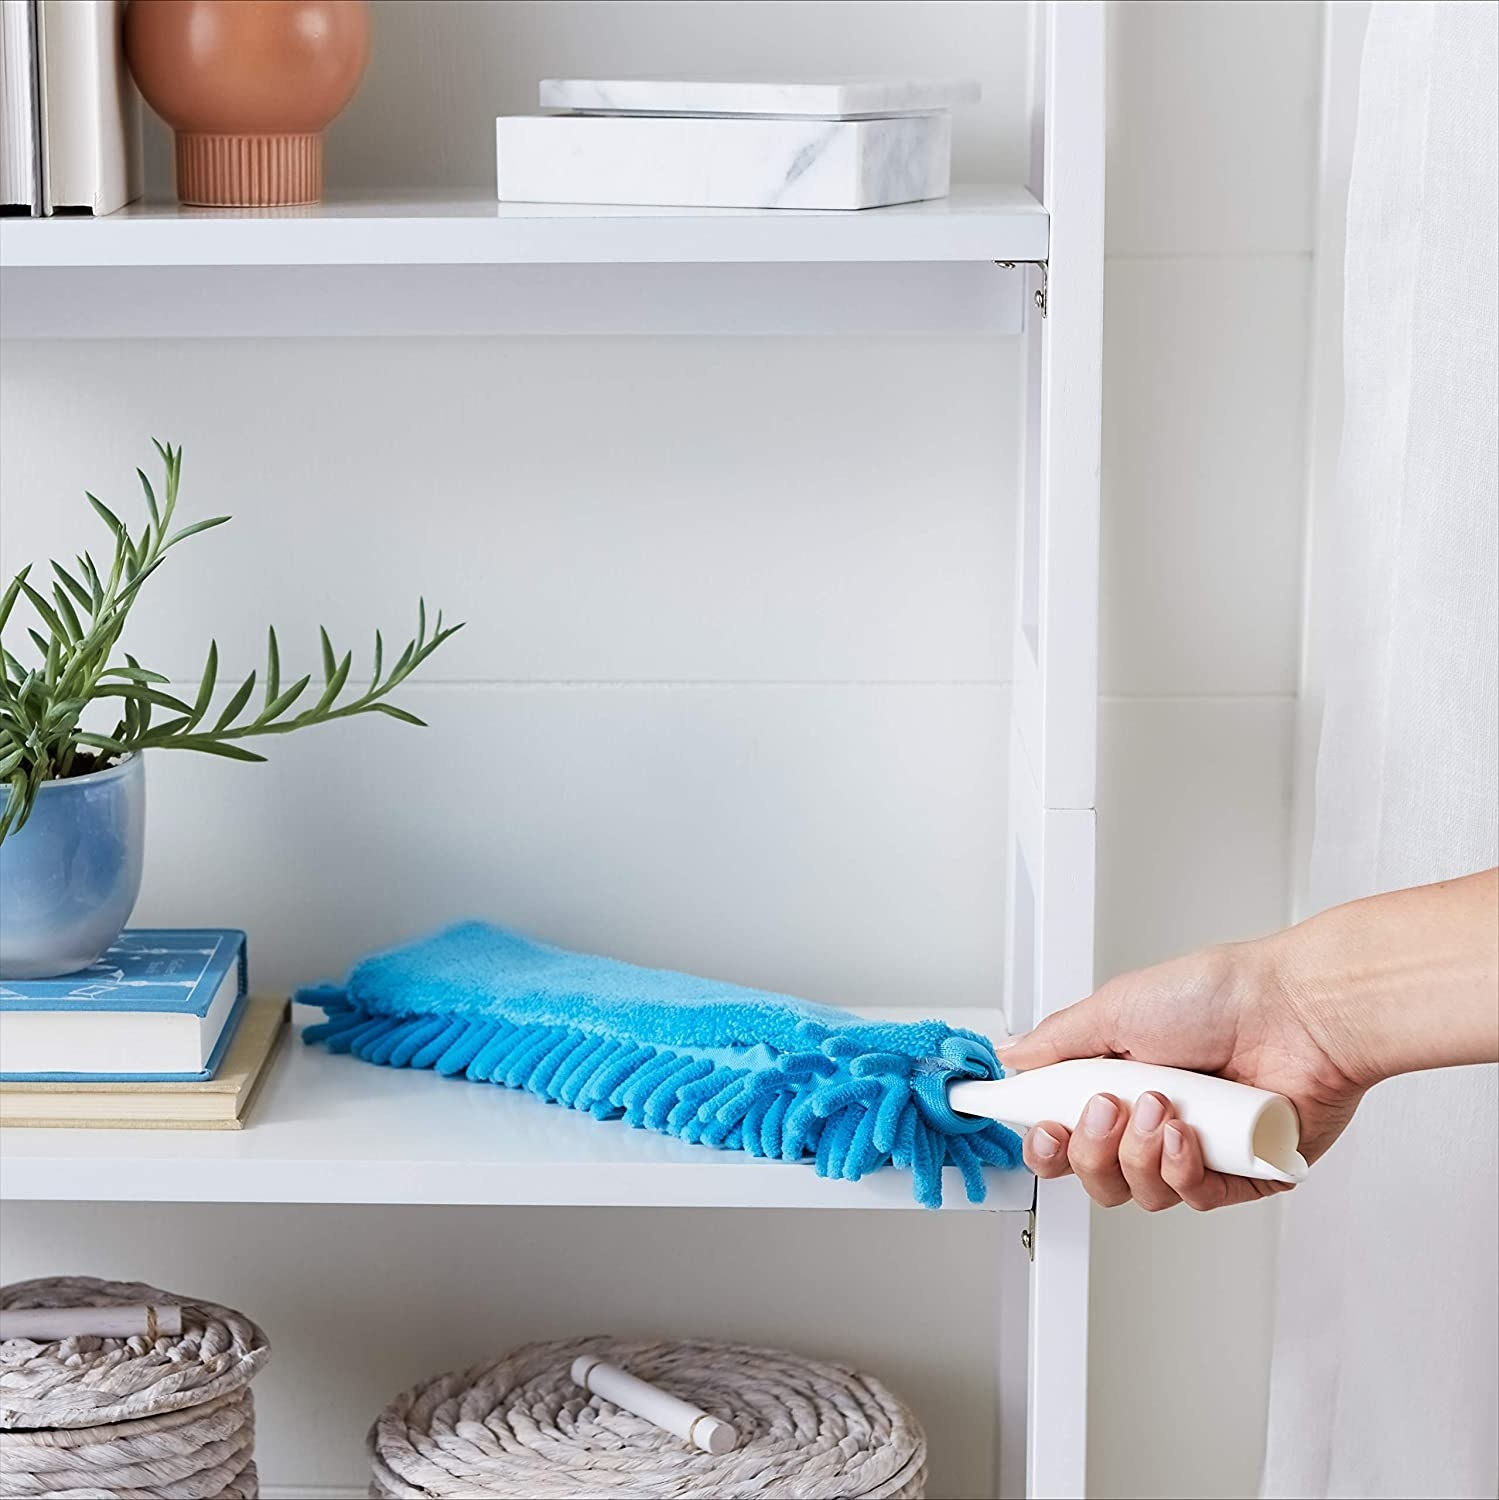 A duster cleans off a shelf